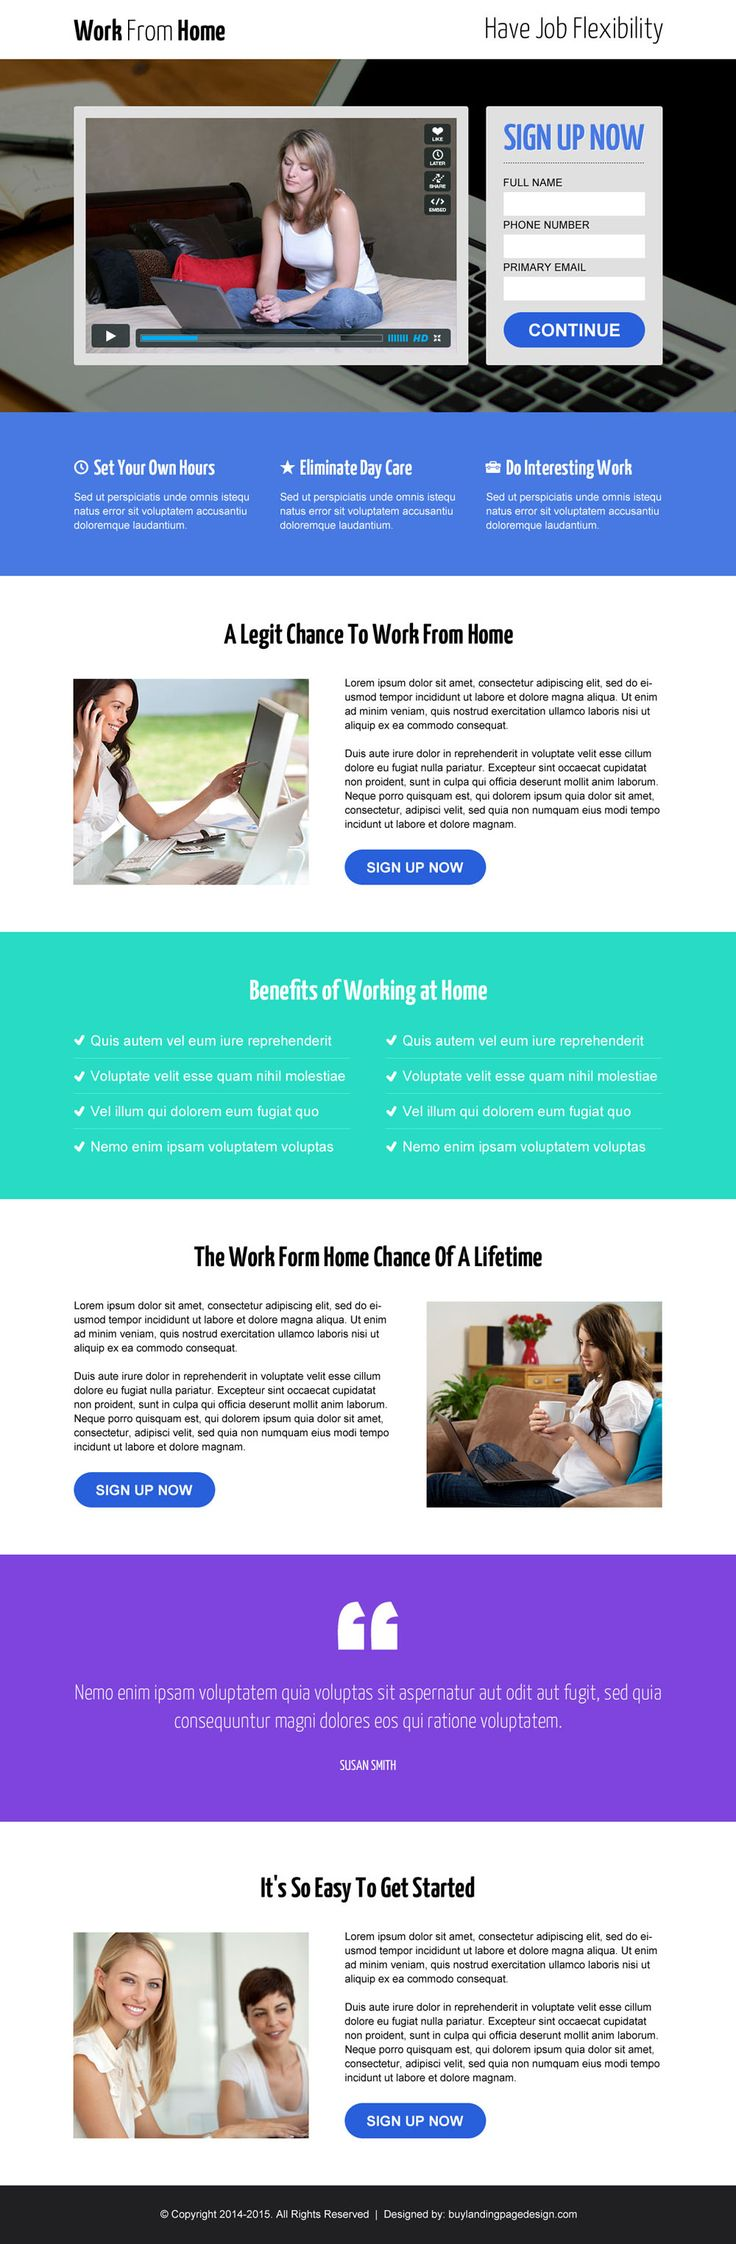 Work From Home Opportunity Lead Capture Video Landing Page Design Template Part 58